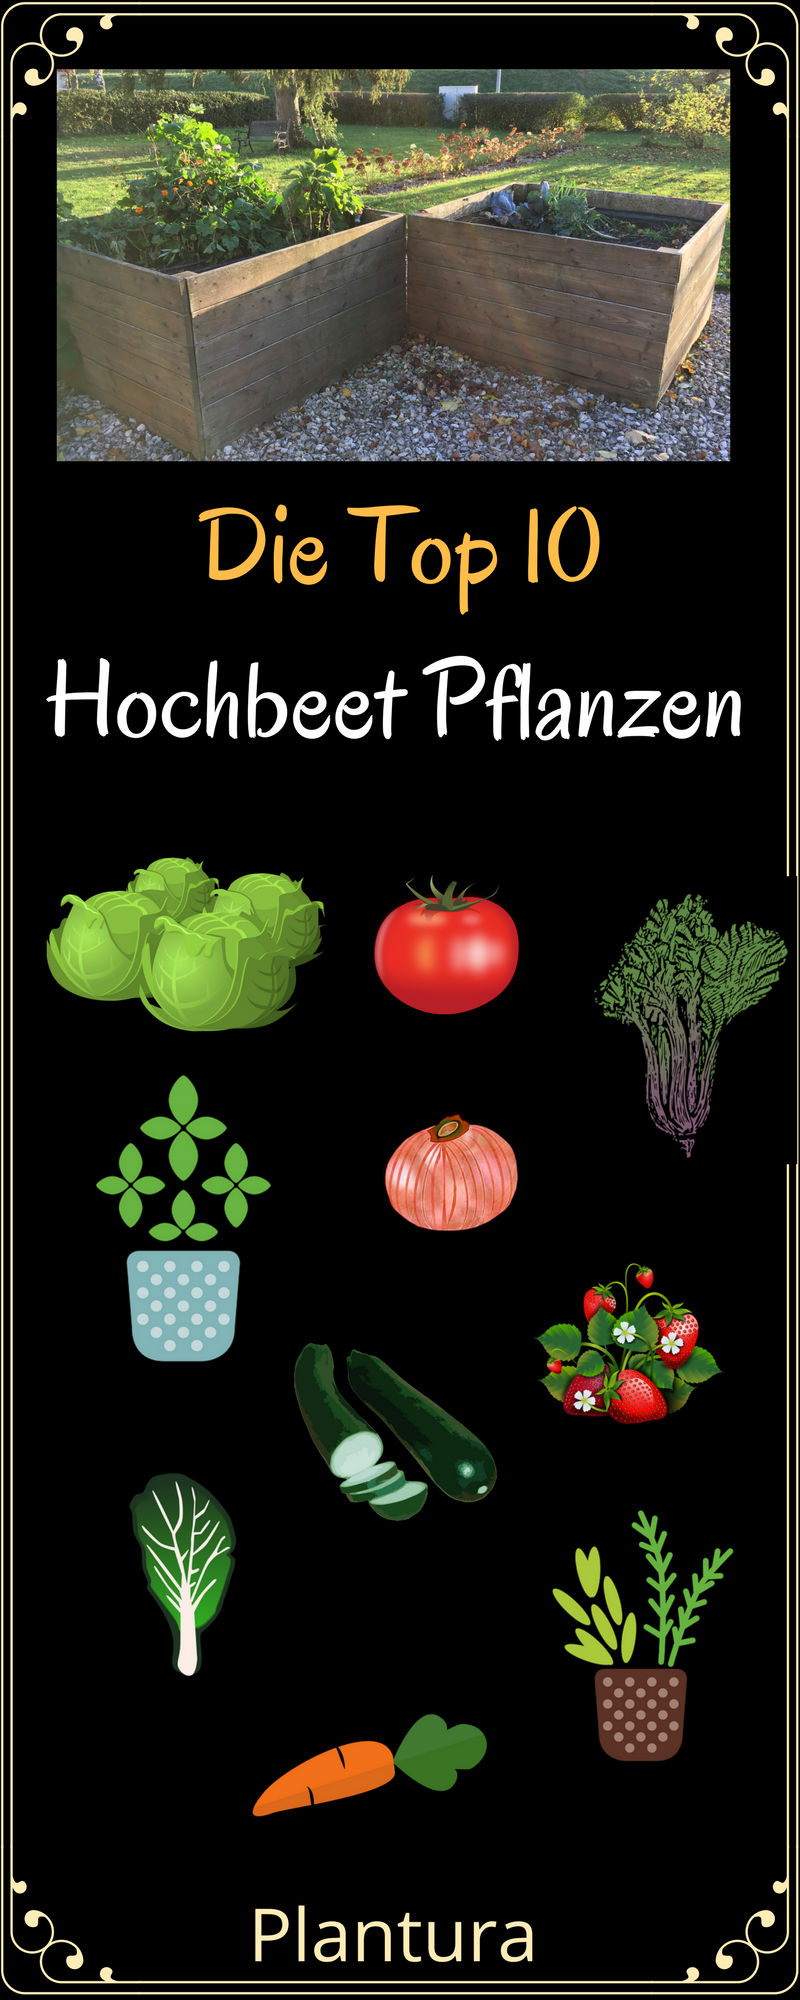 die top 10 der besten hochbeet pflanzen garten pinterest gardens garten and gardening hacks. Black Bedroom Furniture Sets. Home Design Ideas